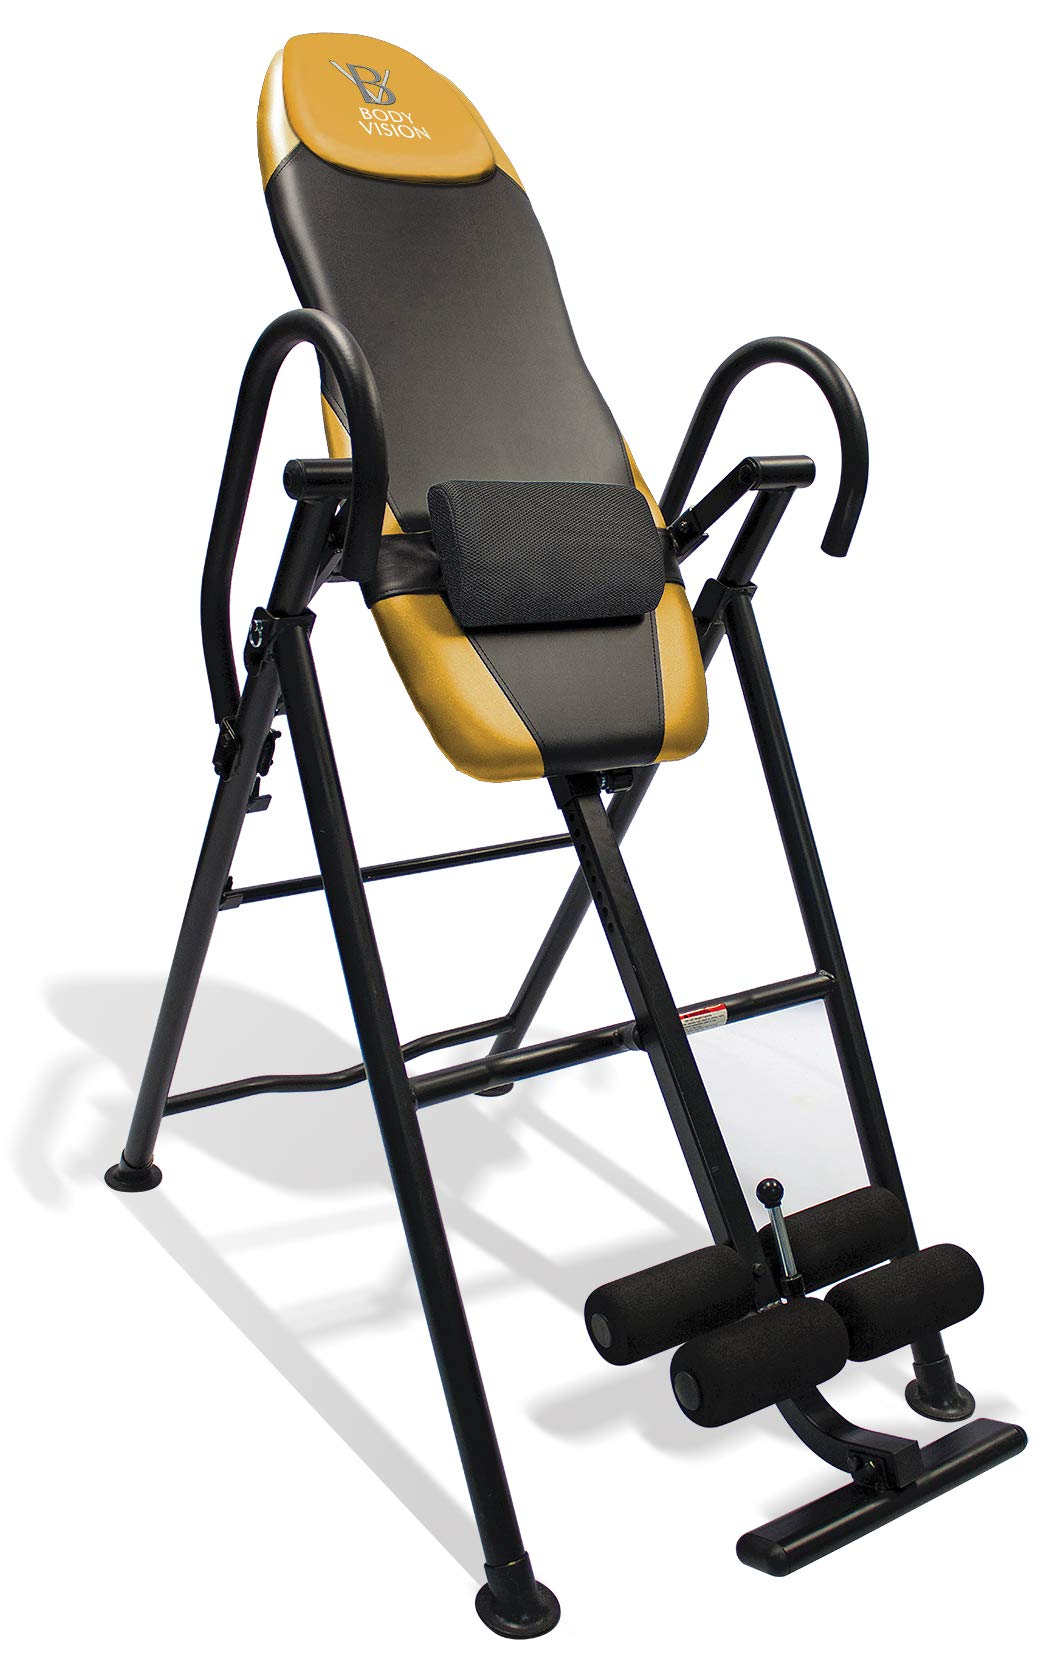 Body Vision IT9550 Deluxe Inversion Table with Adjustable Head Pillow & Lumbar Support Pad, Yellow - Heavy Duty up to 250 lbs